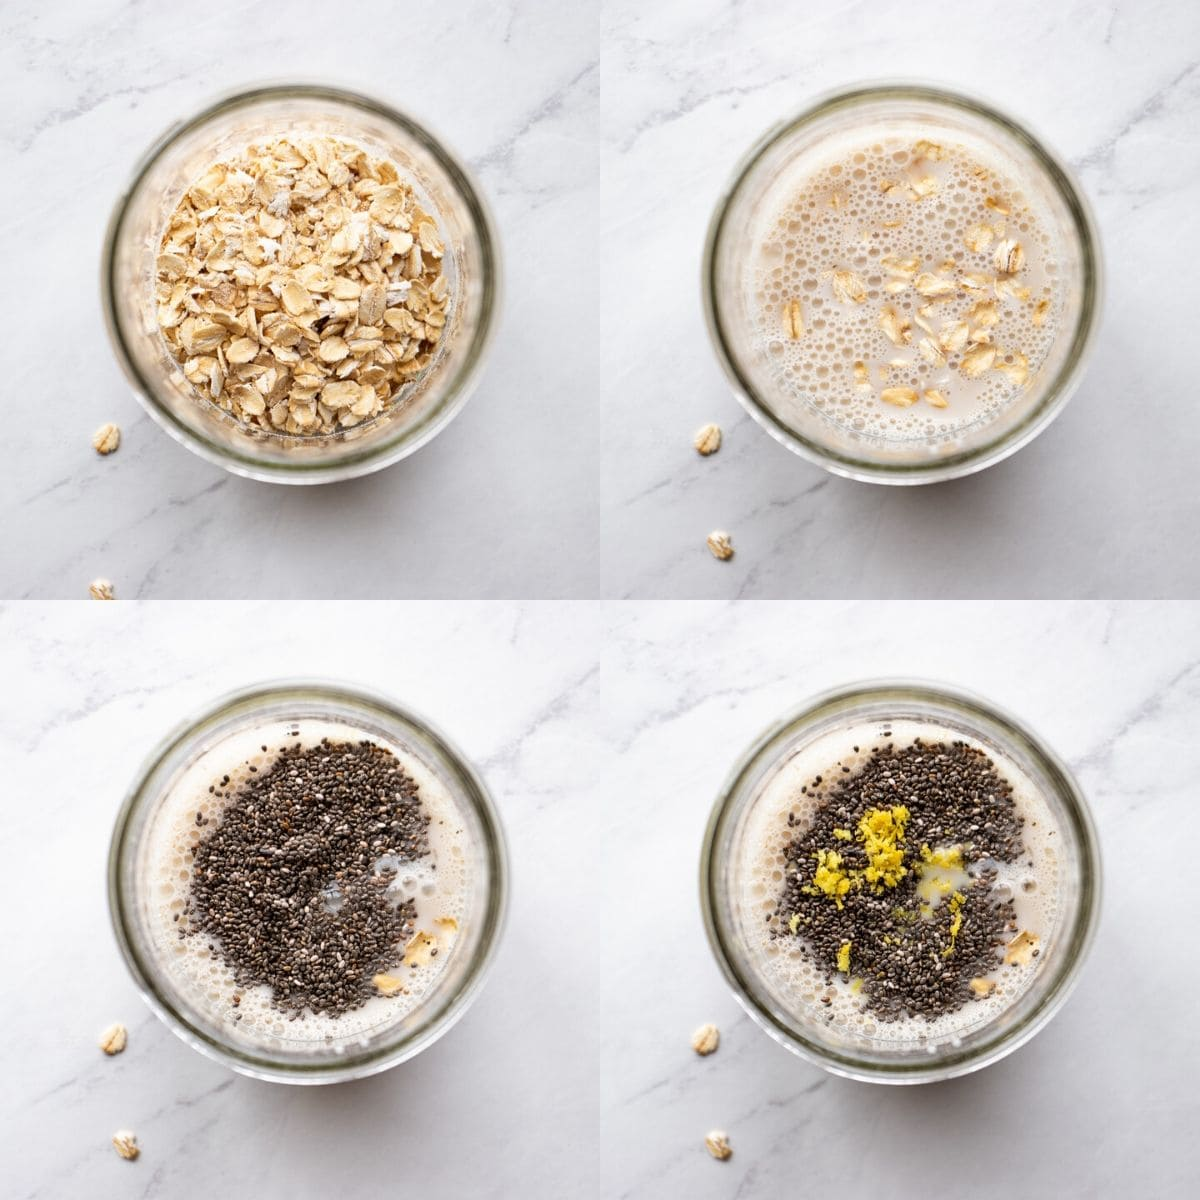 Four images showing the ingredients for overnight oats being added to a glass jar. The order is oats, milk, chia seeds, maple syrup, and lemon.